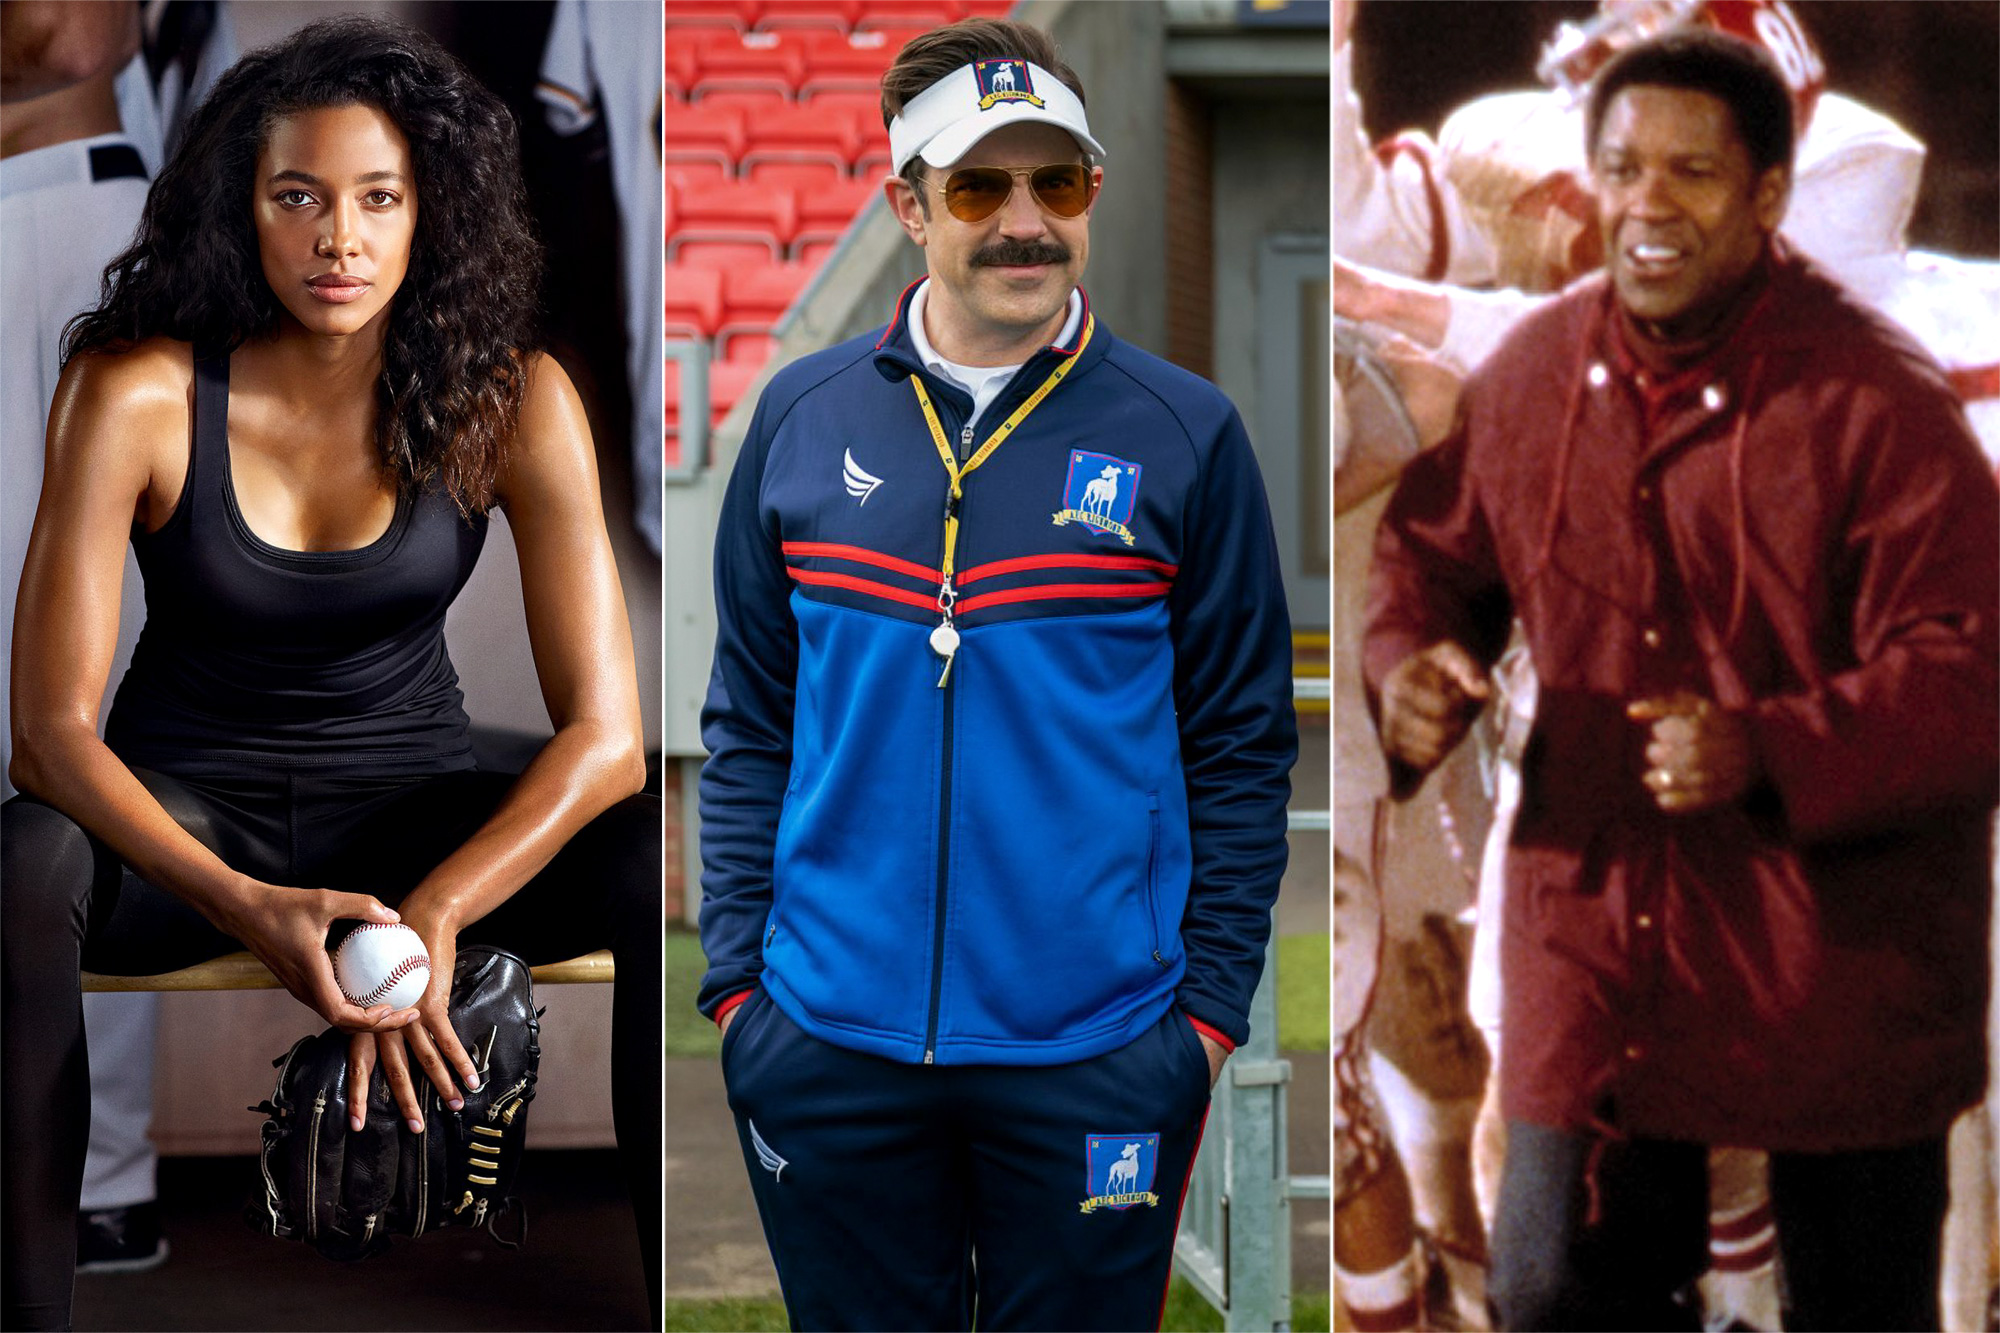 The best sports movies and TV shows